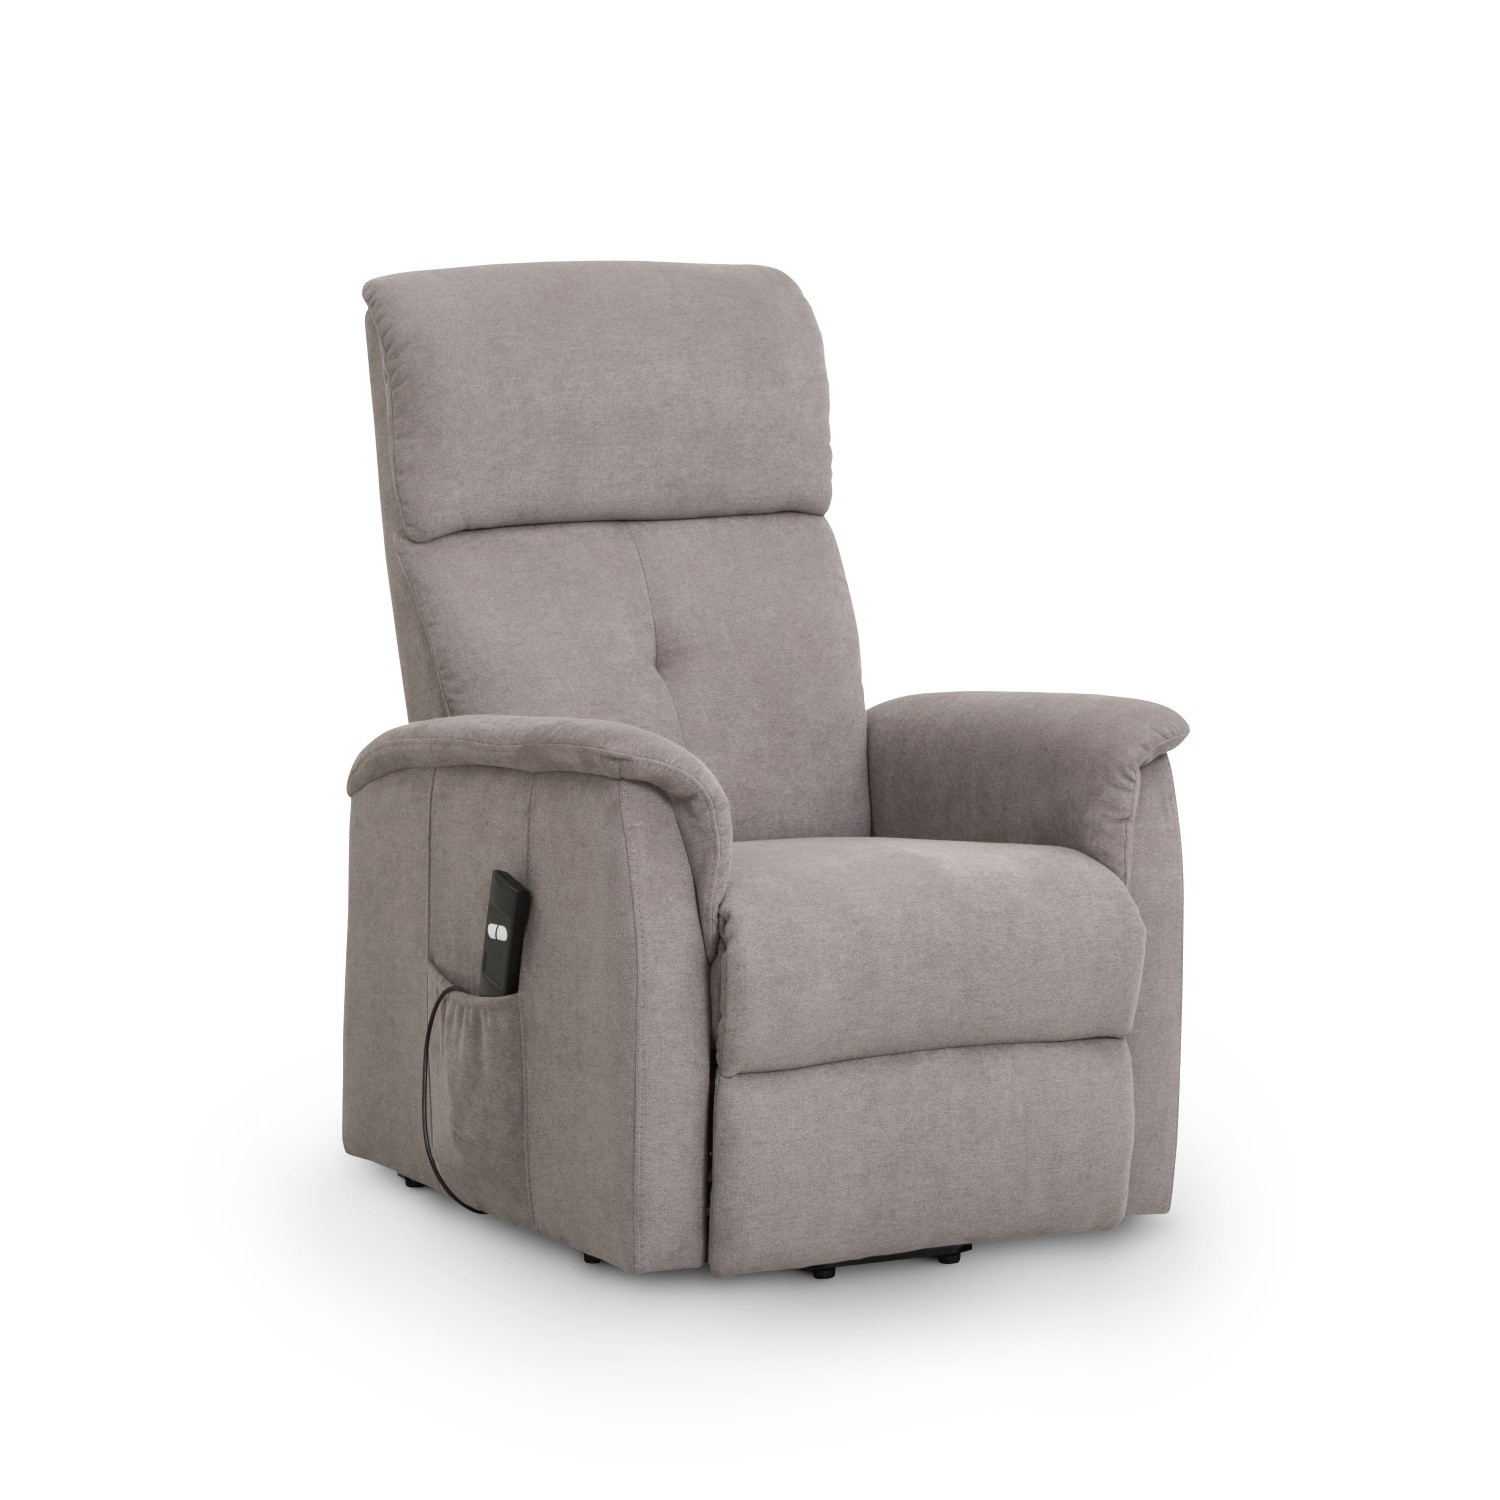 Picture of: Recliner Chair With Rise Function In Beige Fabric Ava Julian Bowen Furniture123